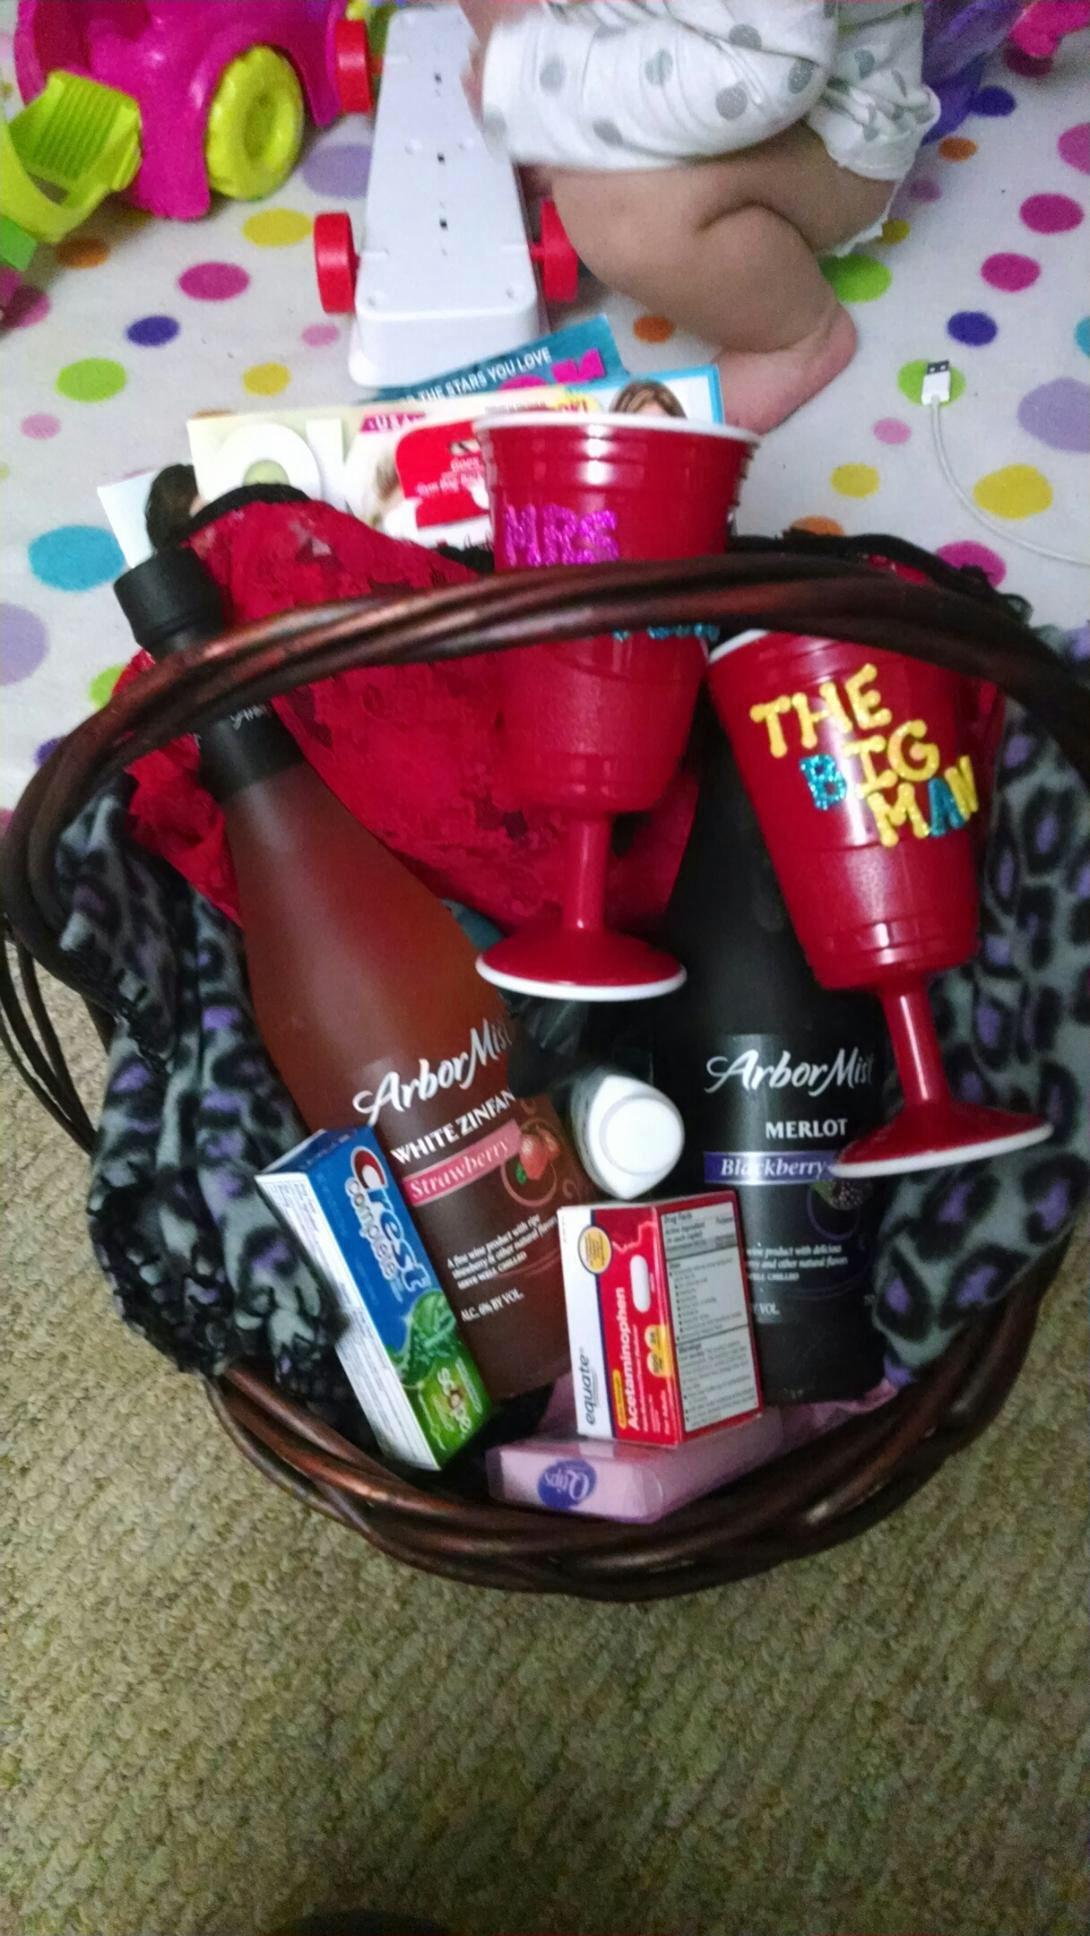 Honeymoon basket all the little things the bride and